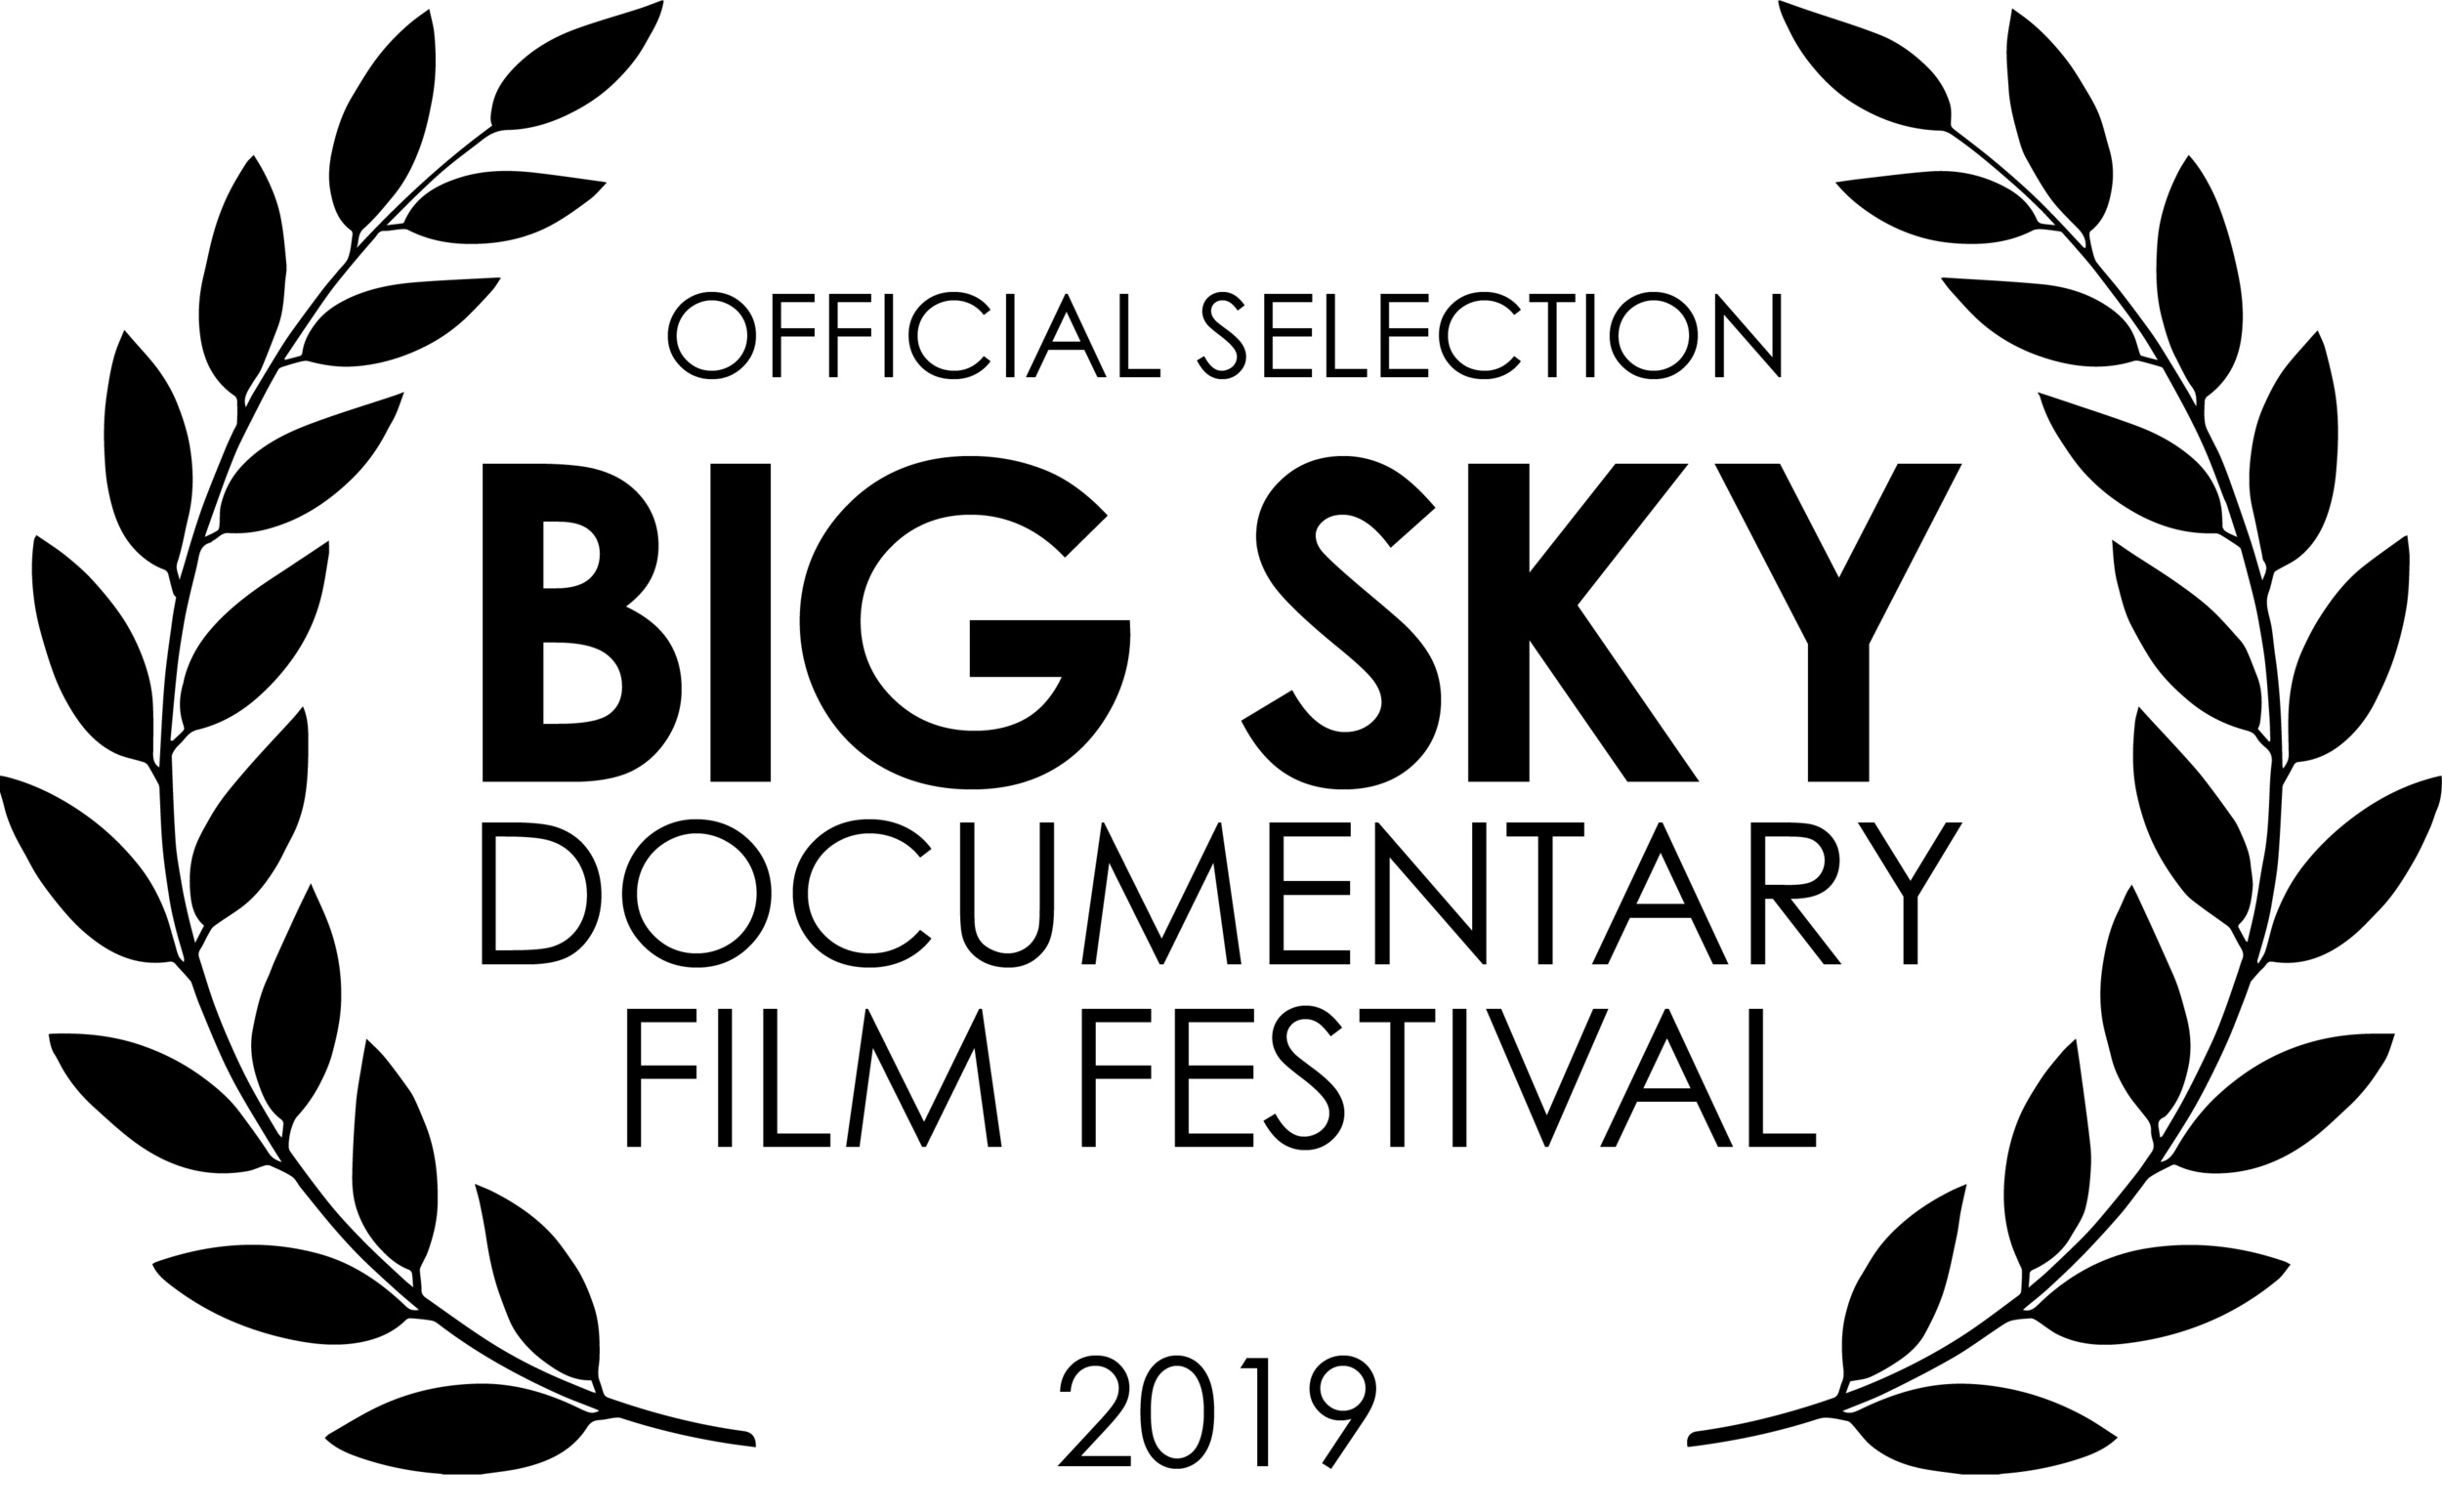 BIG+SKY+Official+Selection+Laurels+2019.jpg